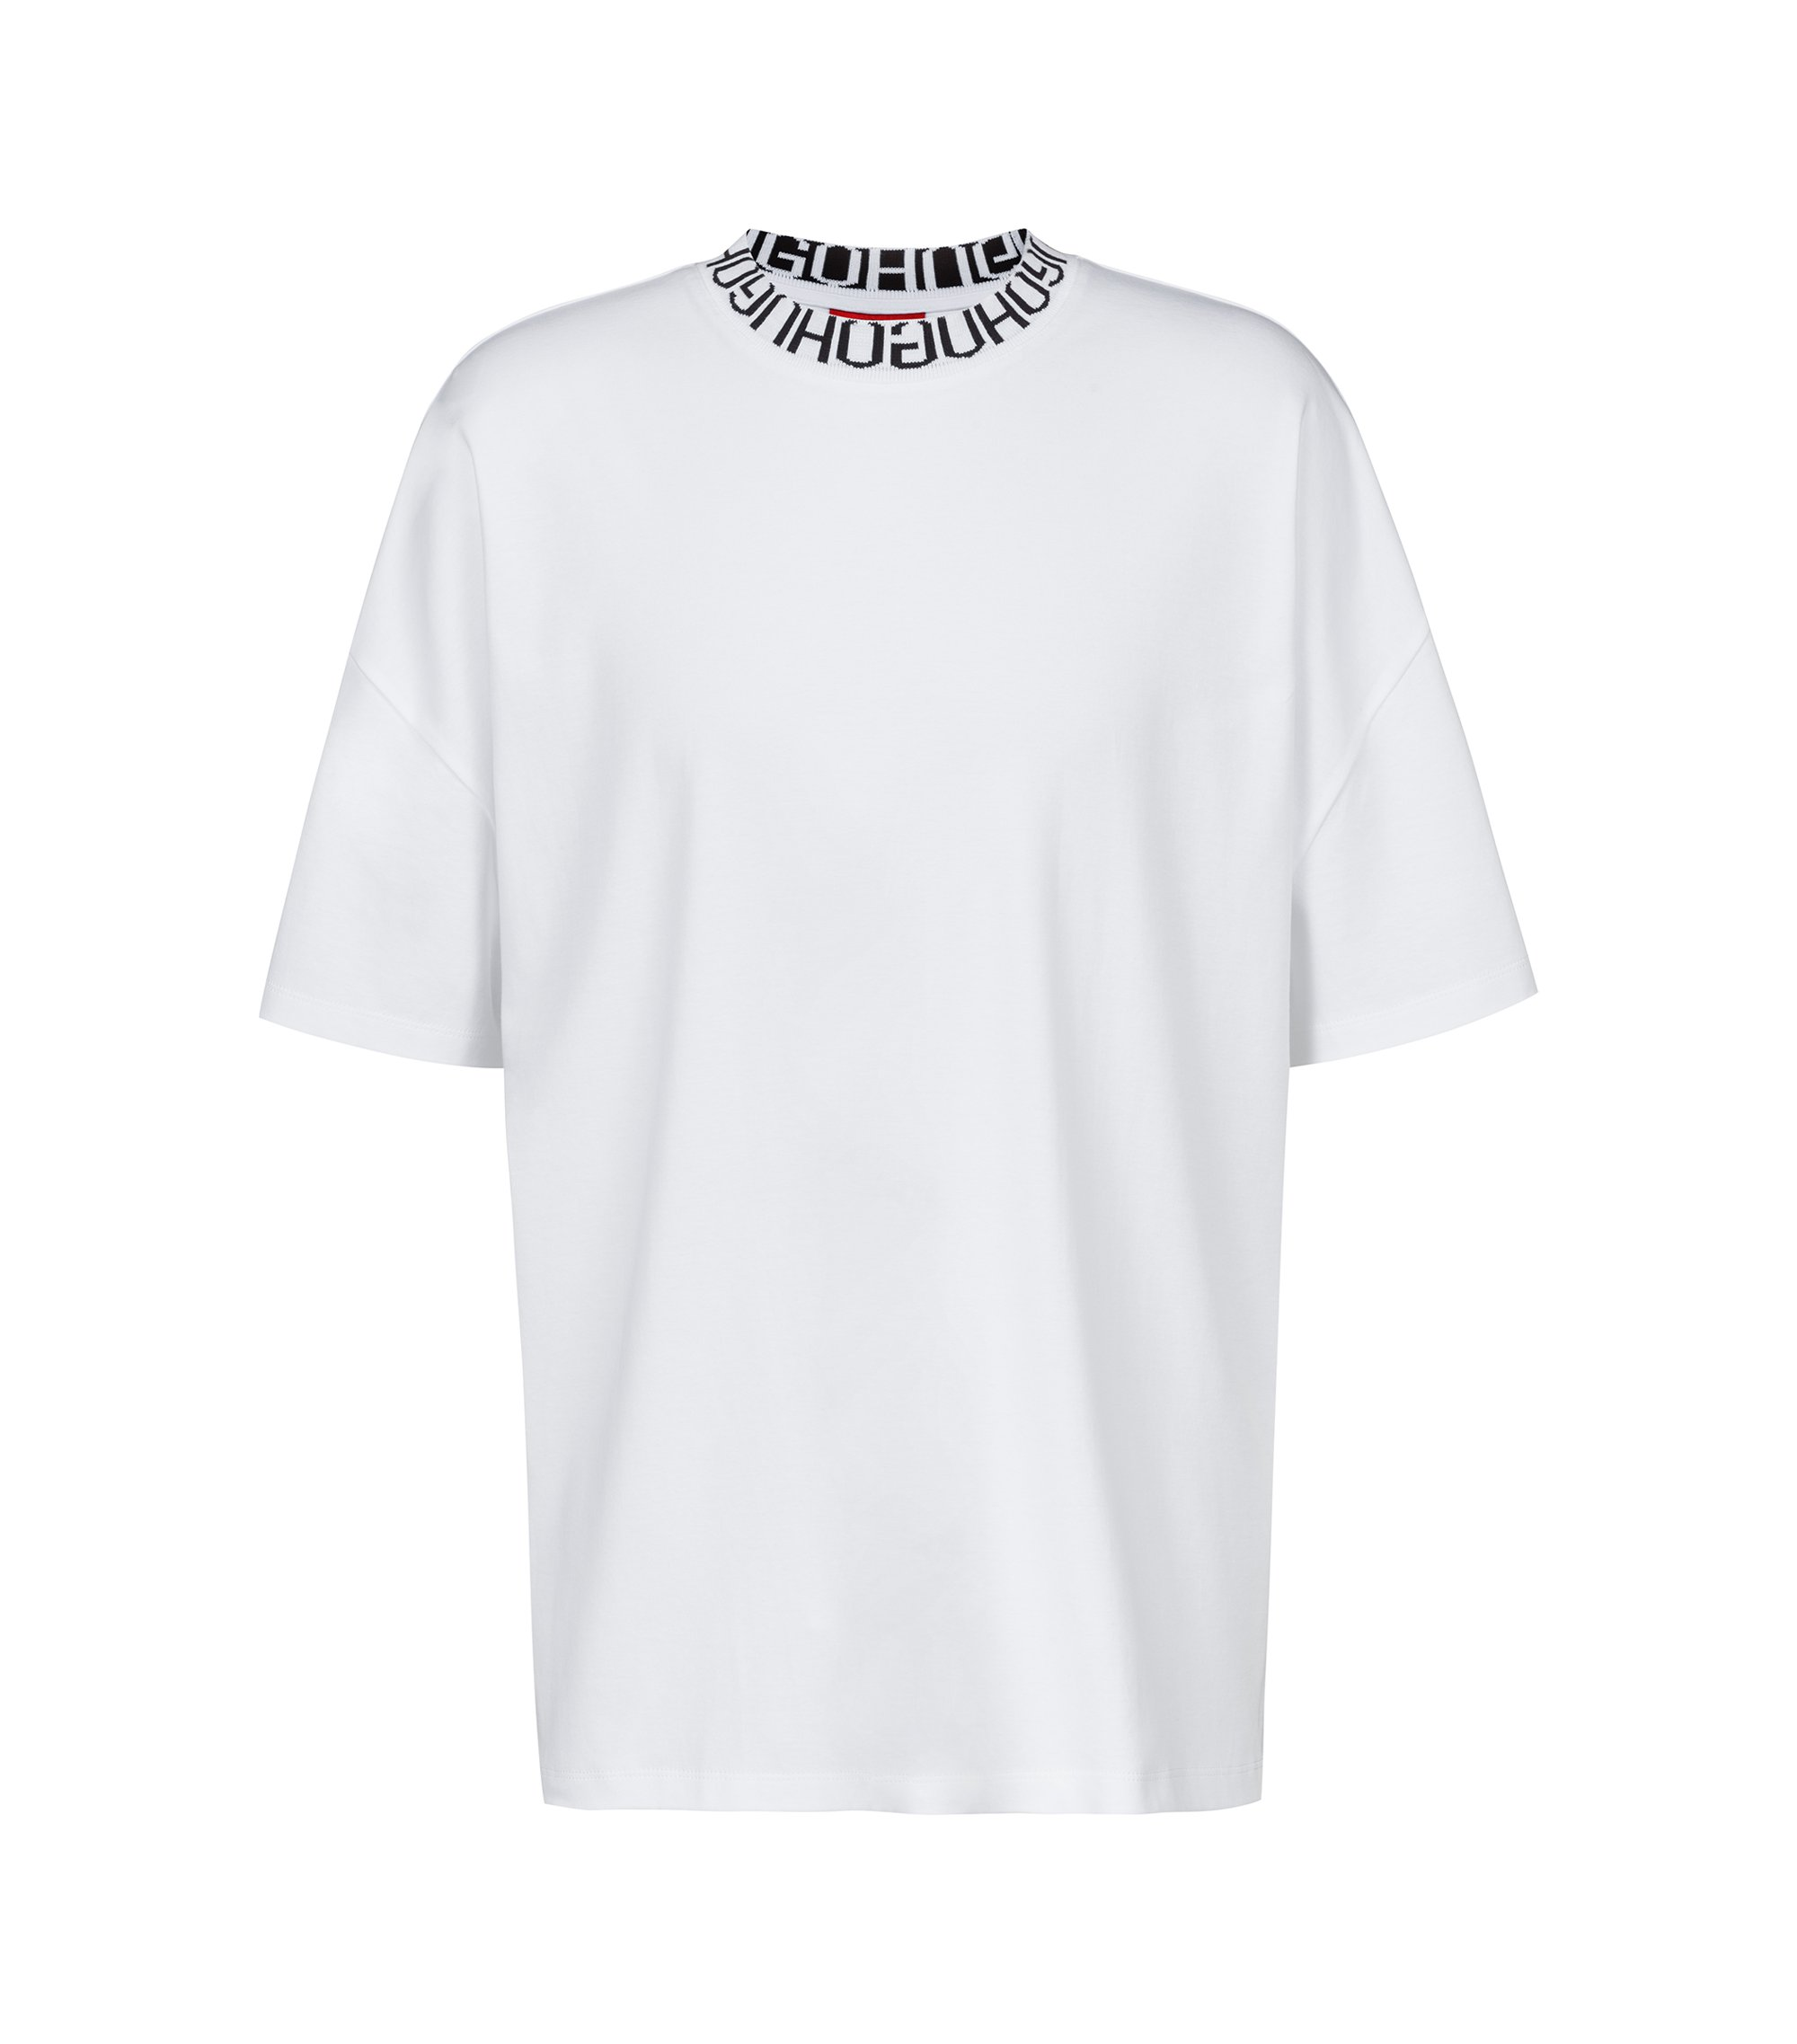 T-shirt Oversized Fit, avec logo inversé à l'encolure, Blanc